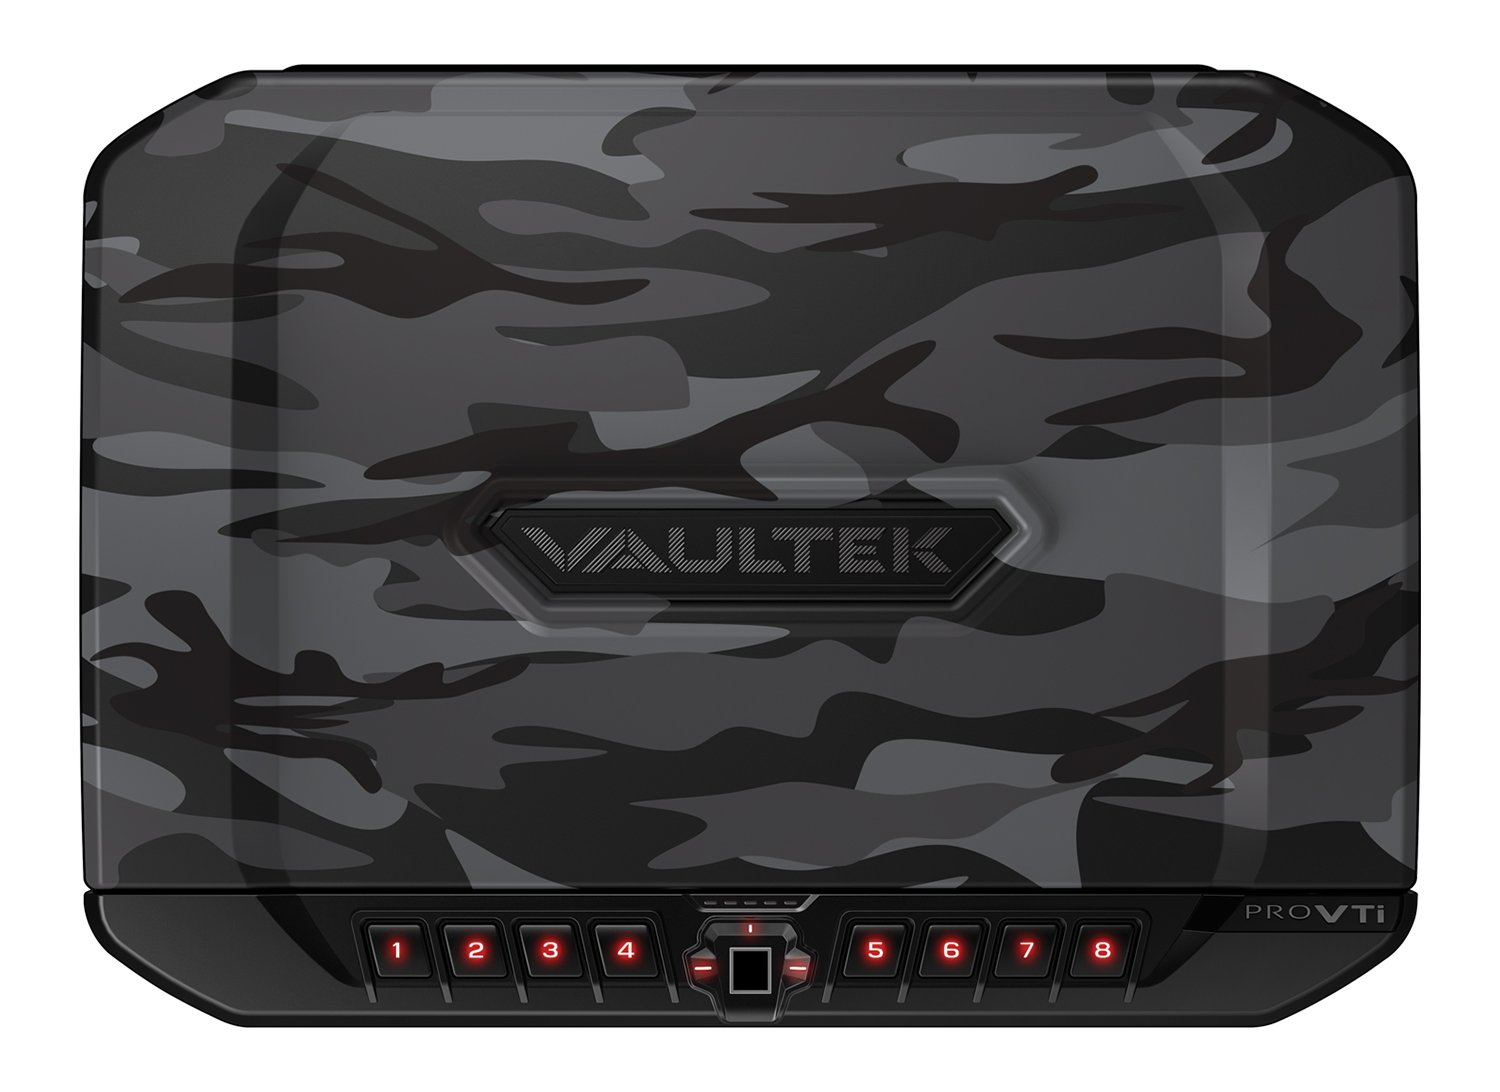 VAULTEK PRO VTi Full-Size Biometric Handgun Safe Bluetooth Smart Multiple Pistol Safe with Auto-Open Lid and Rechargeable Battery (Camo)